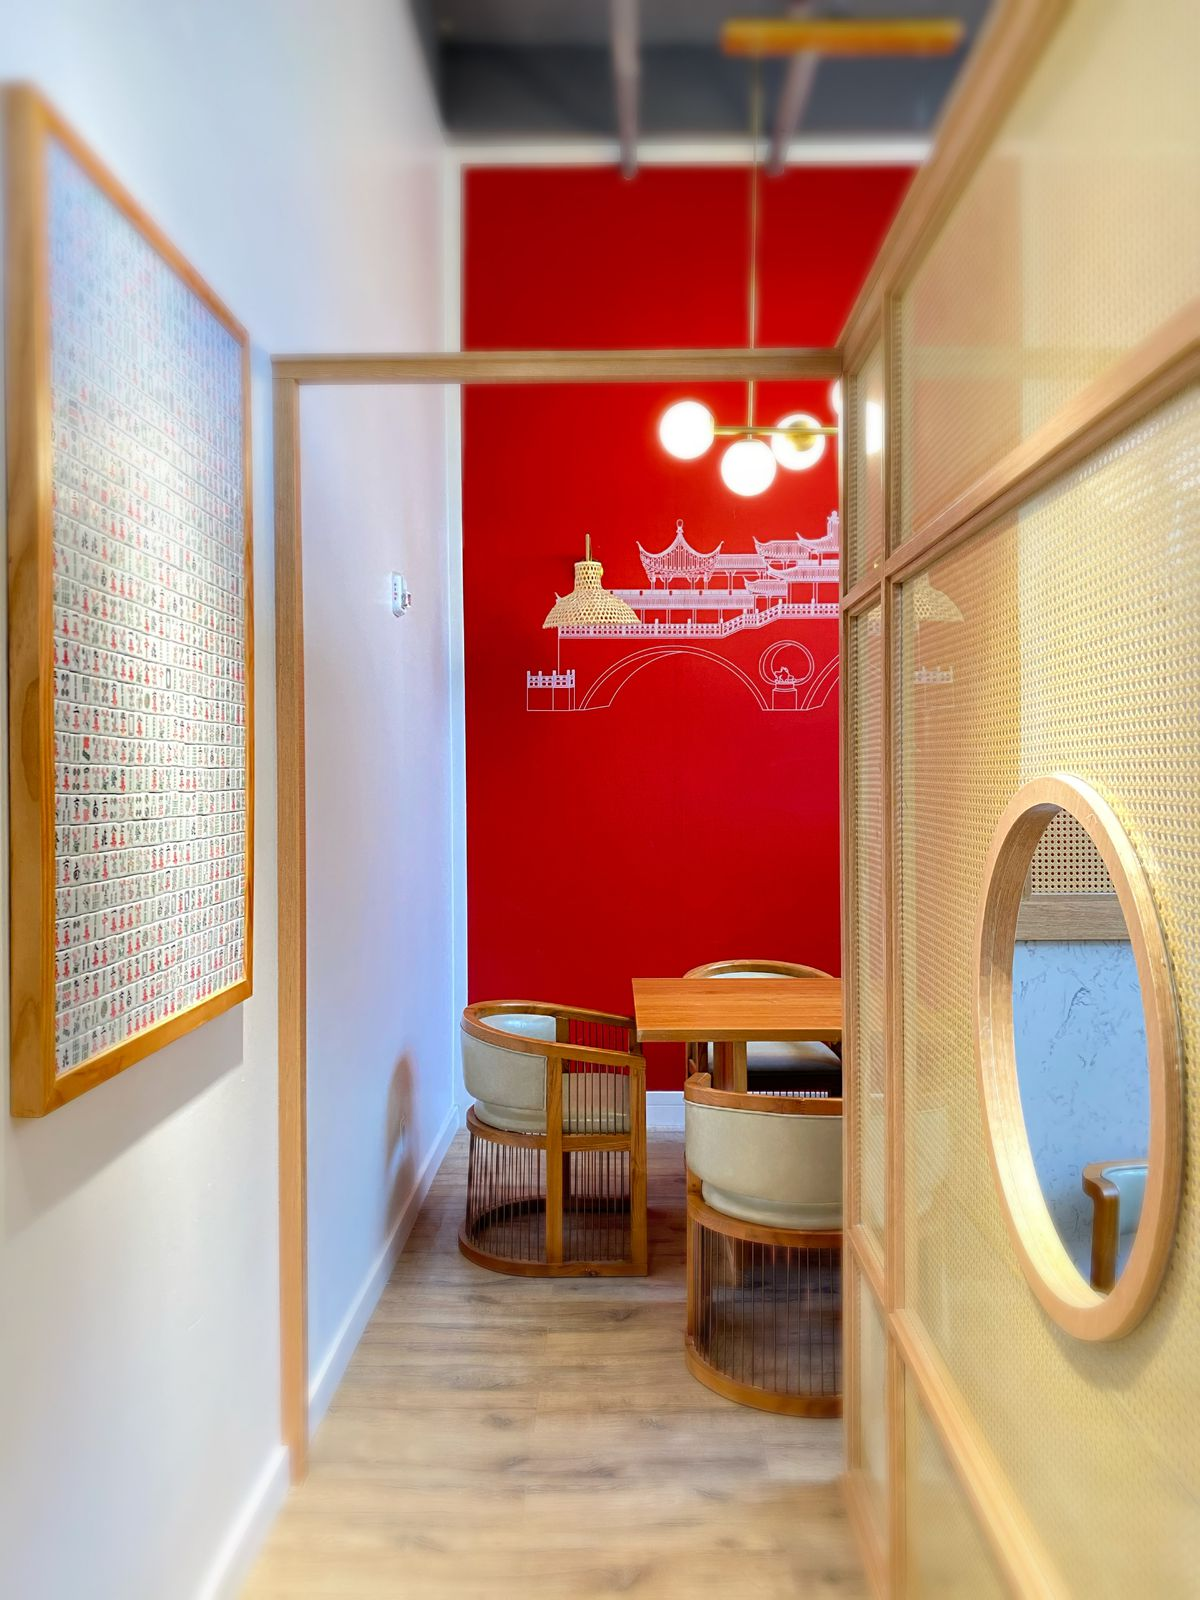 A small hallway at Chengdu Taste, with a view of an alcove table